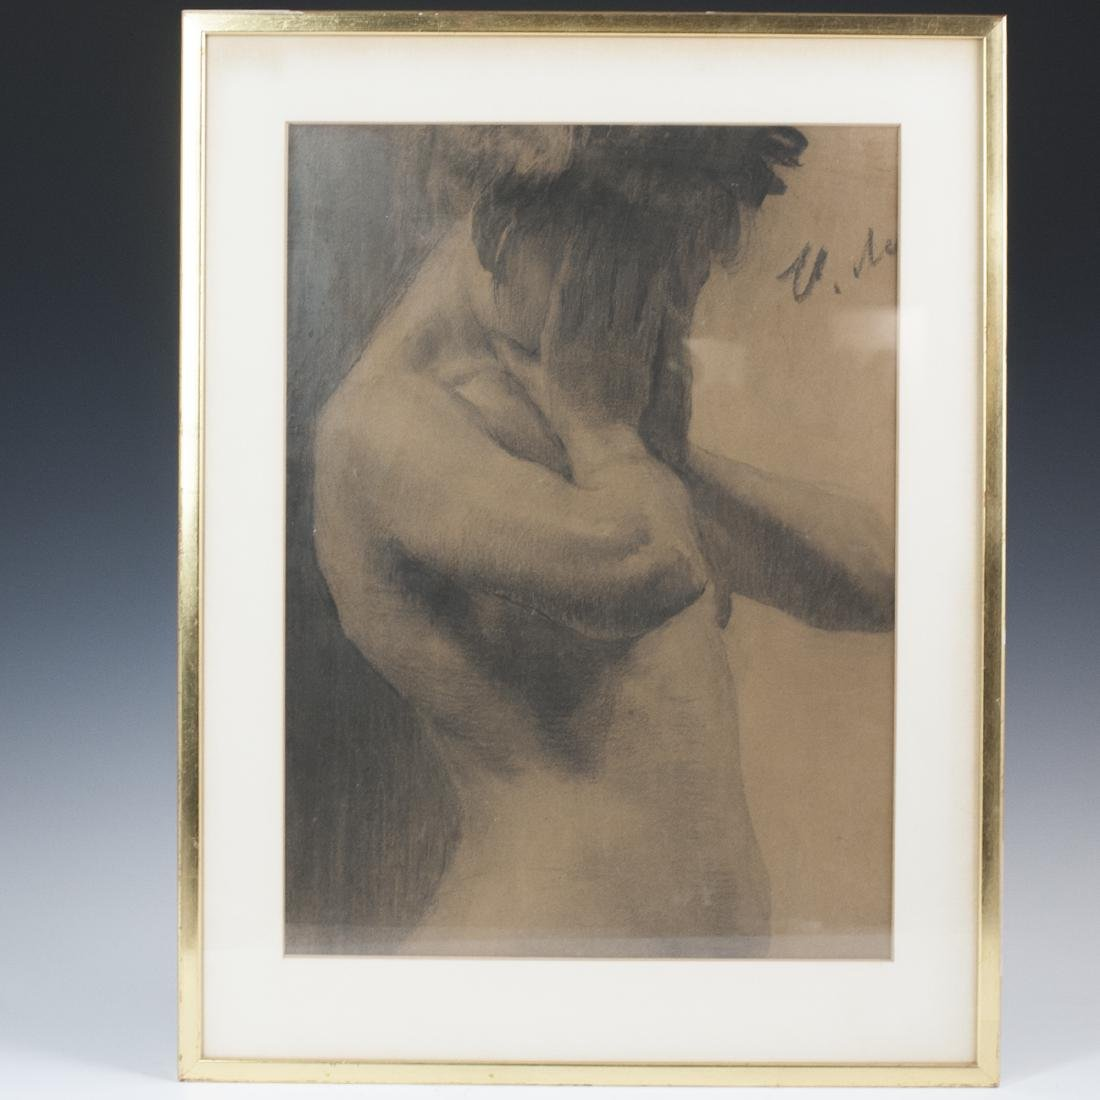 Signed Nude Etching on Paper